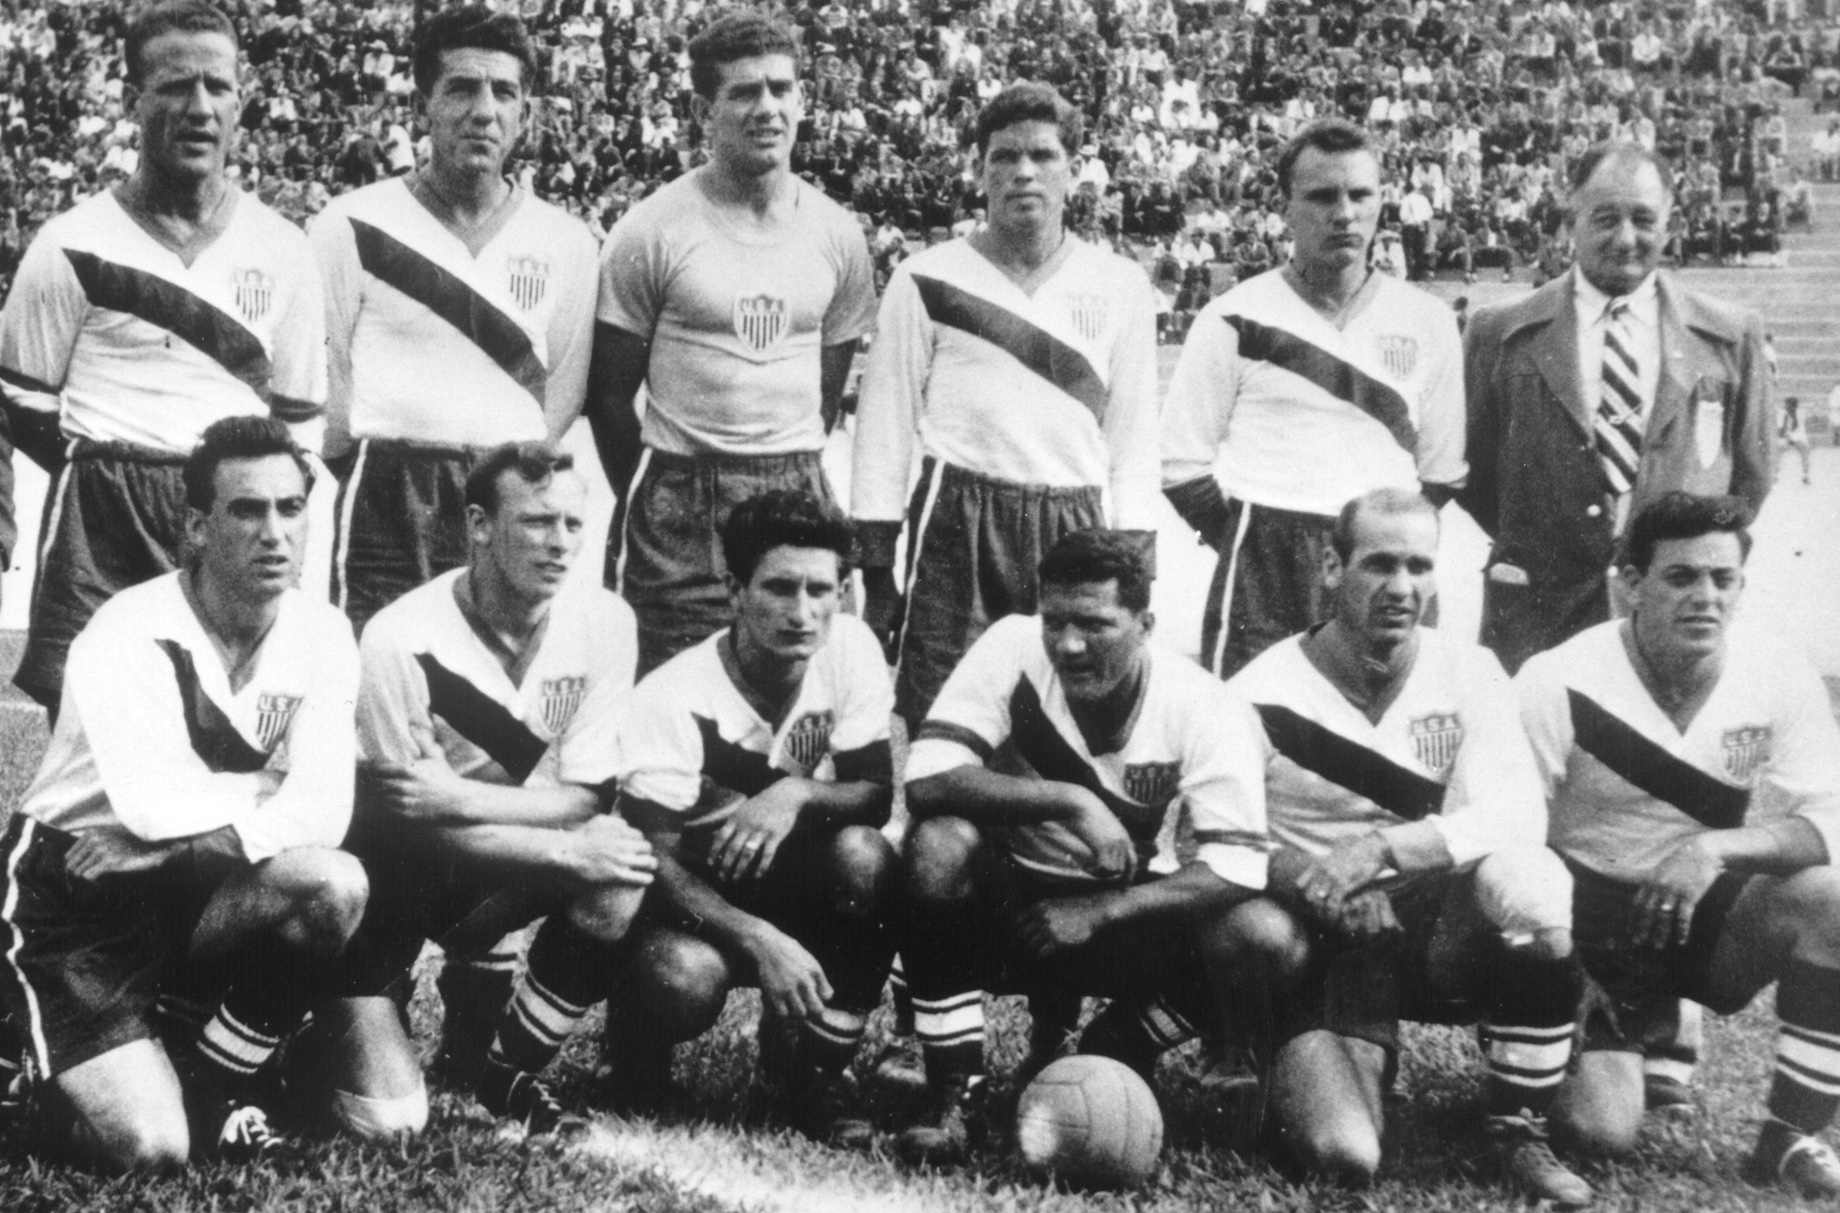 1950 World Cup: The Miracle on Green